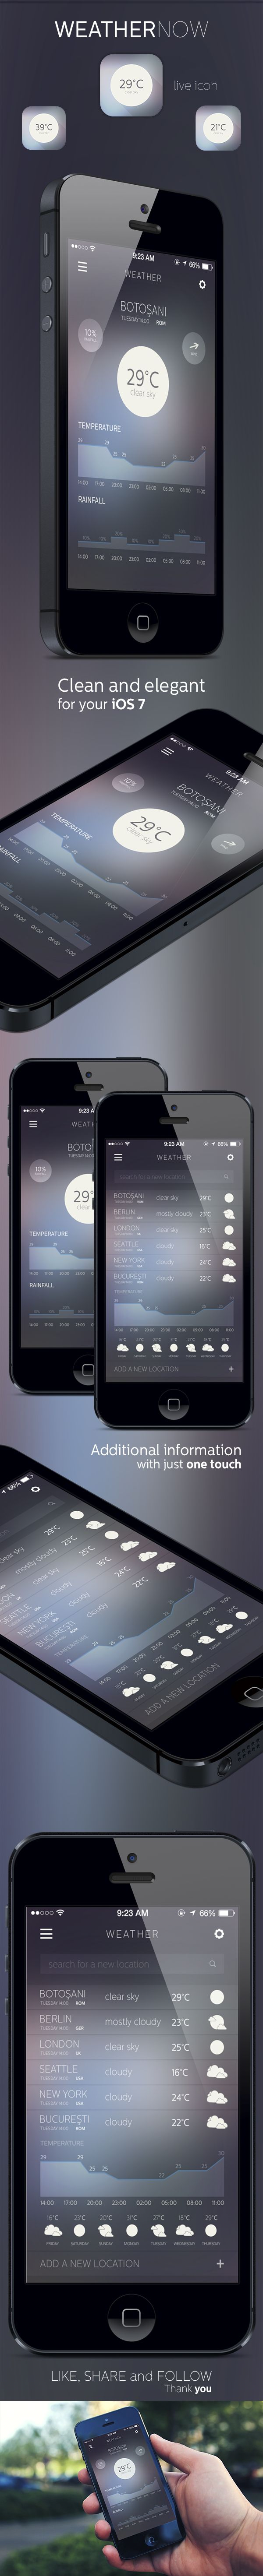 WEATHER NOW #mobile #ui #ux #app